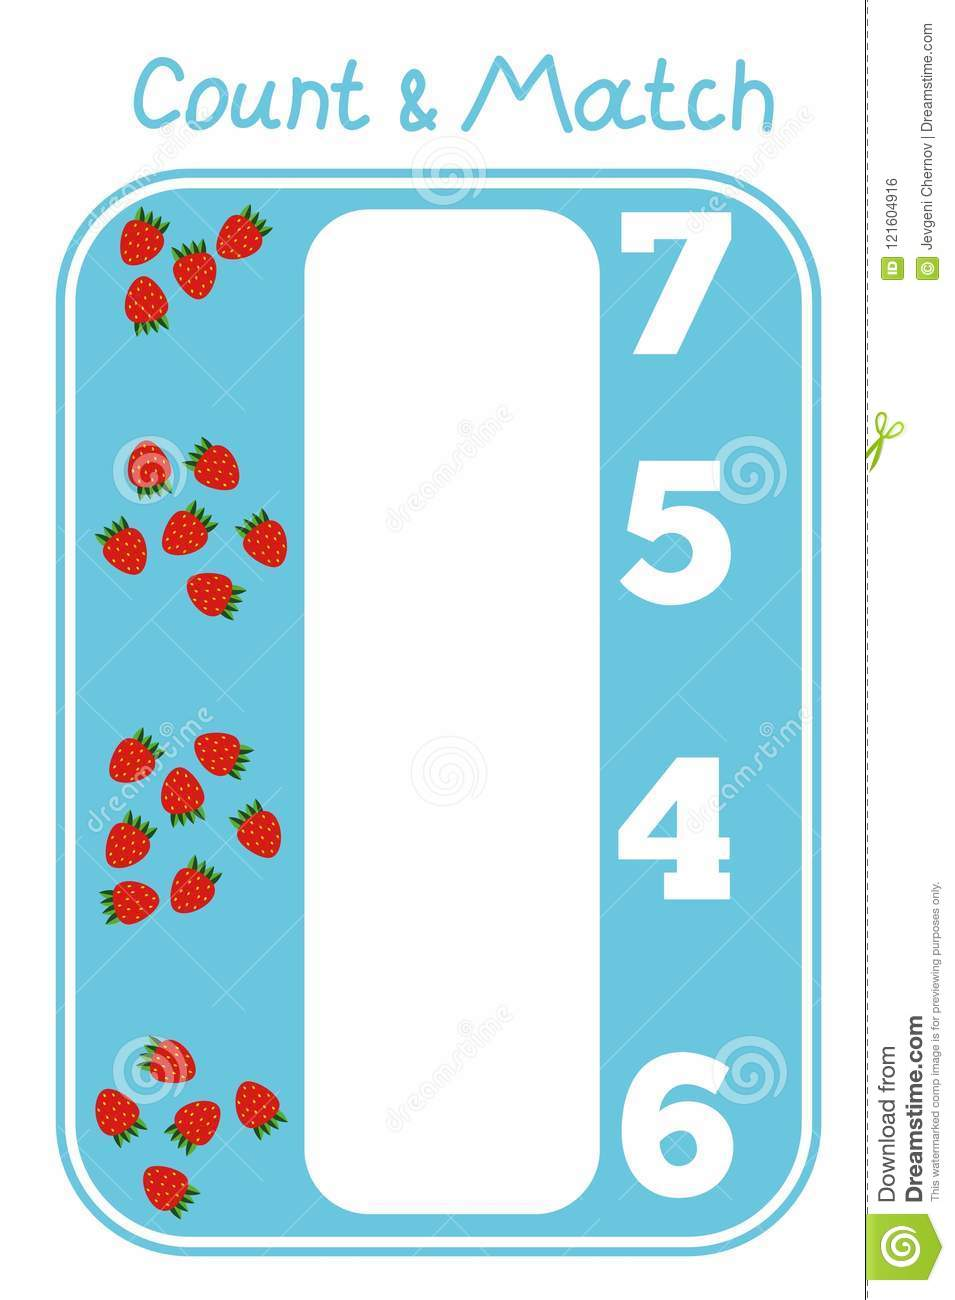 Count And Match Game With Strawberries For Children Stock Vector ...